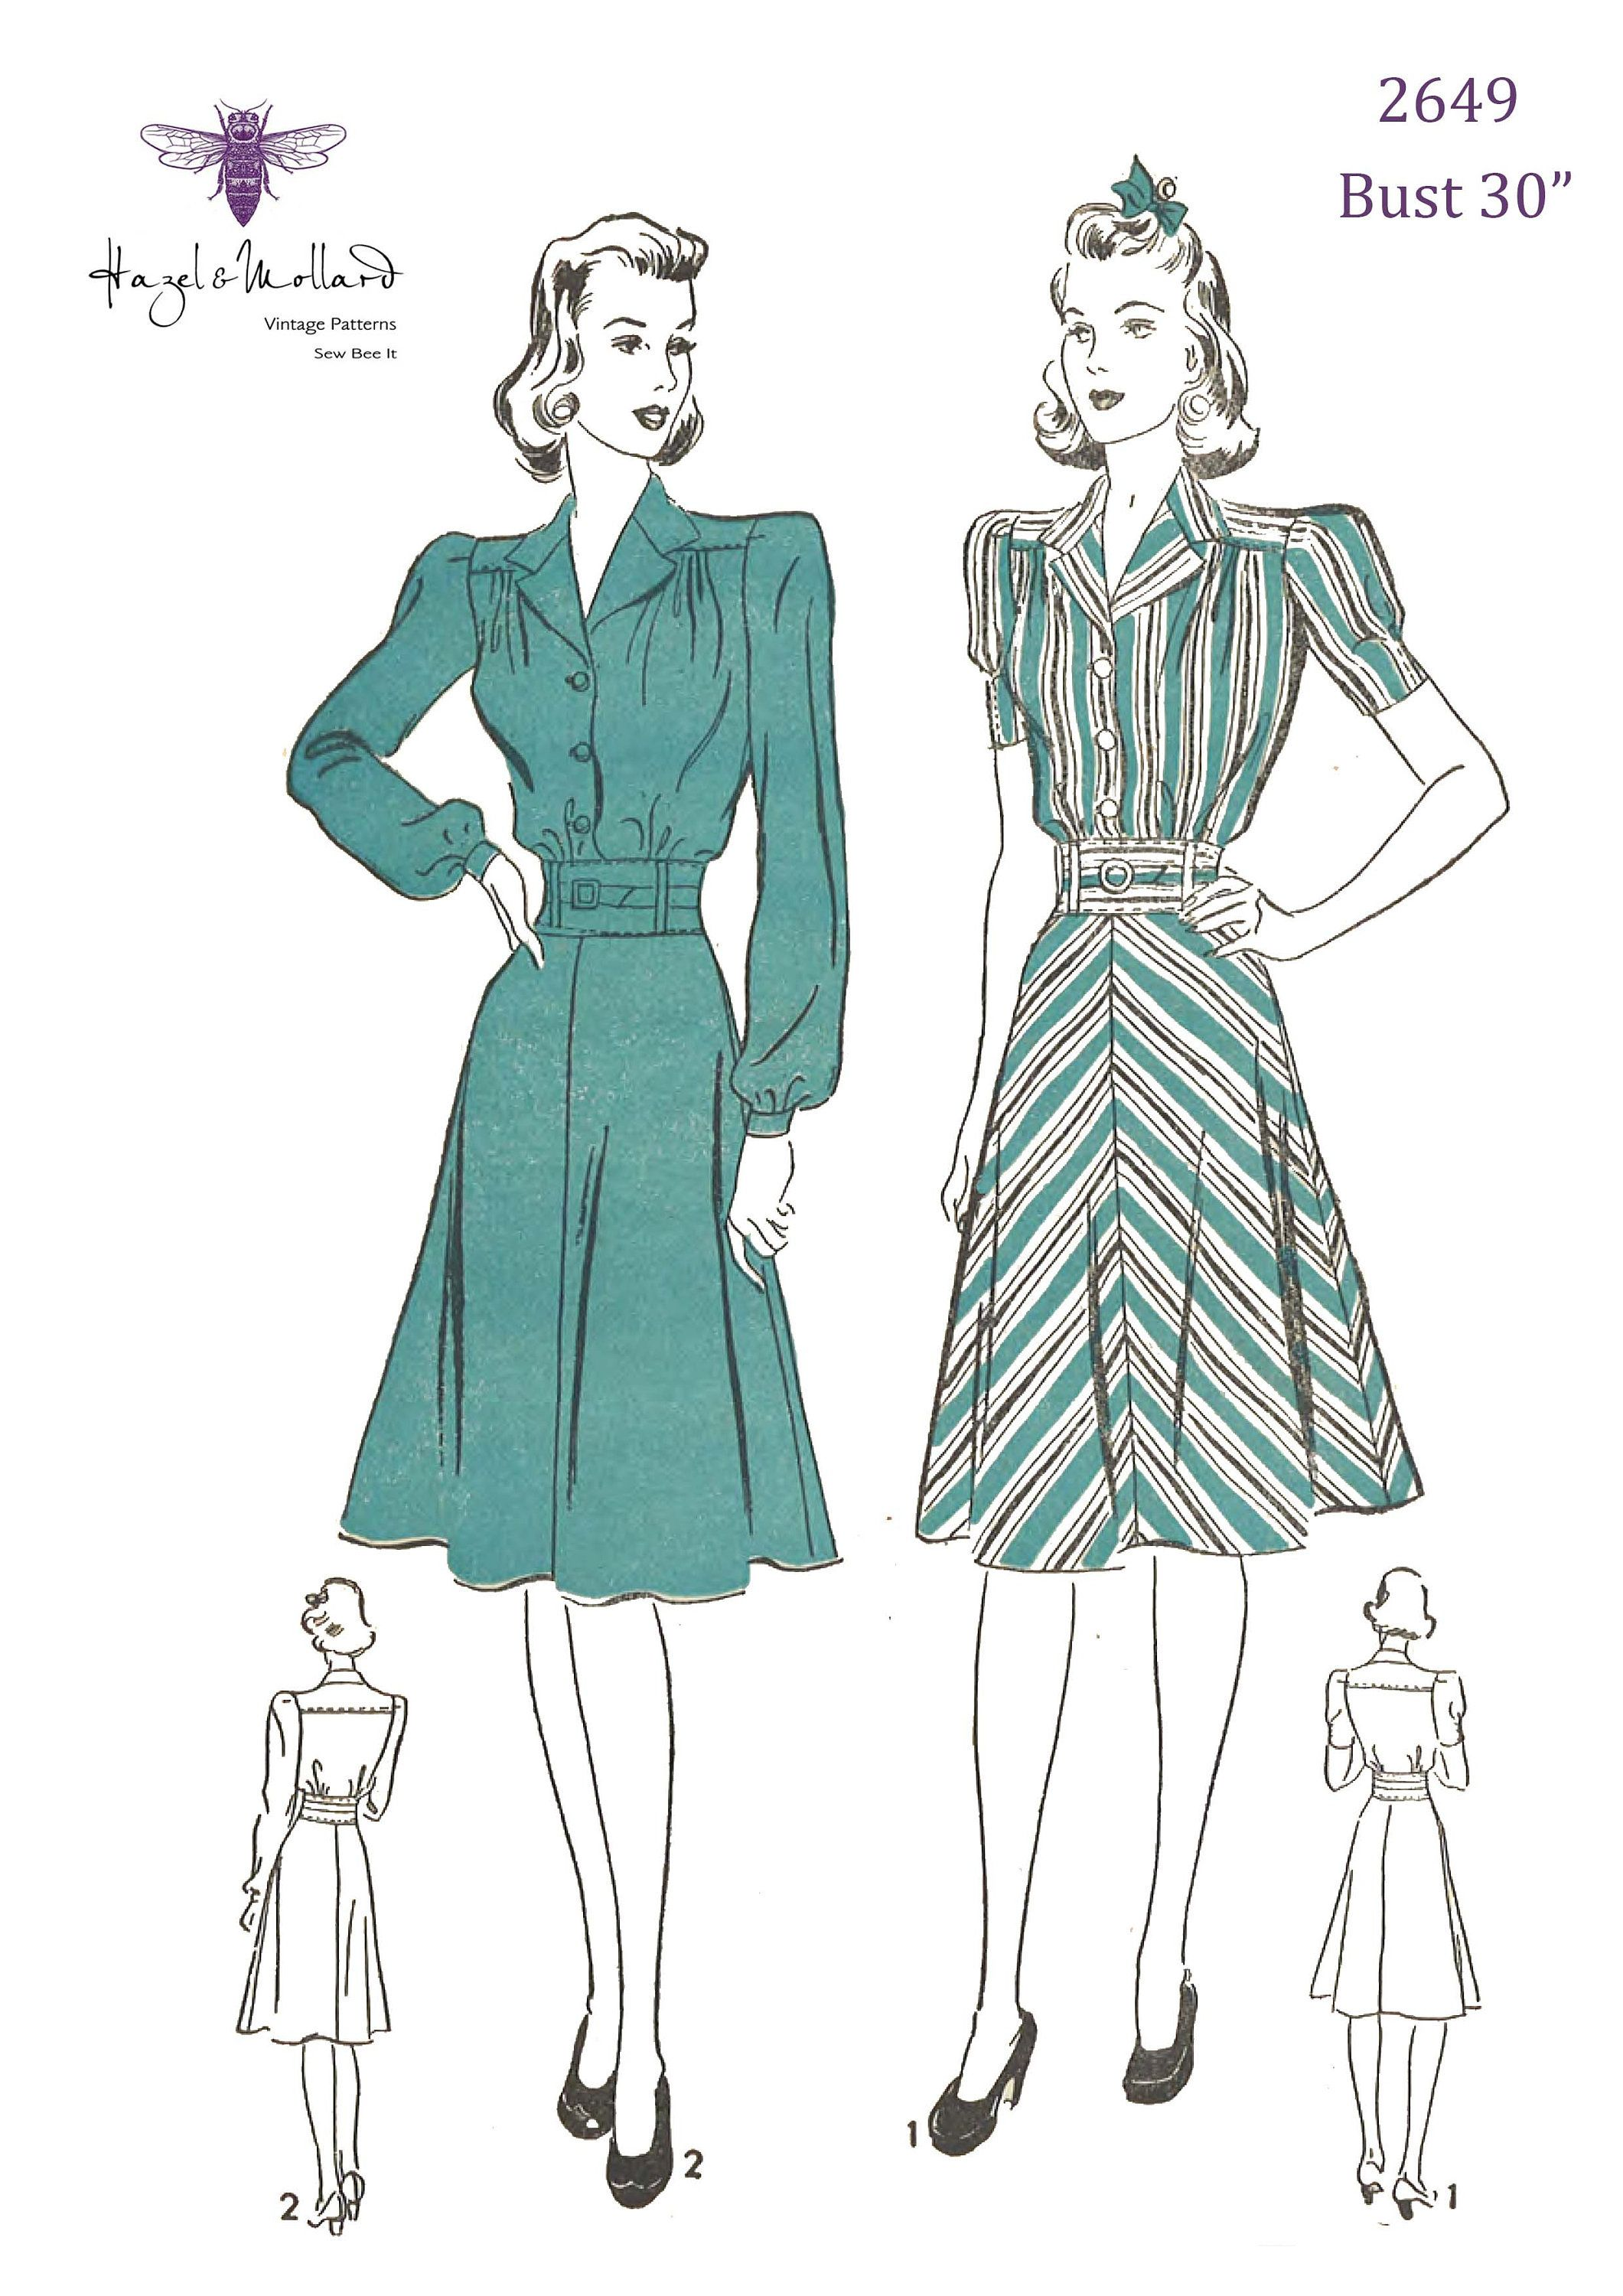 Vintage 1940 S Sewing Pattern Women S Tailored Dress Etsy Womens Sewing Patterns Tailored Dress Sewing Patterns